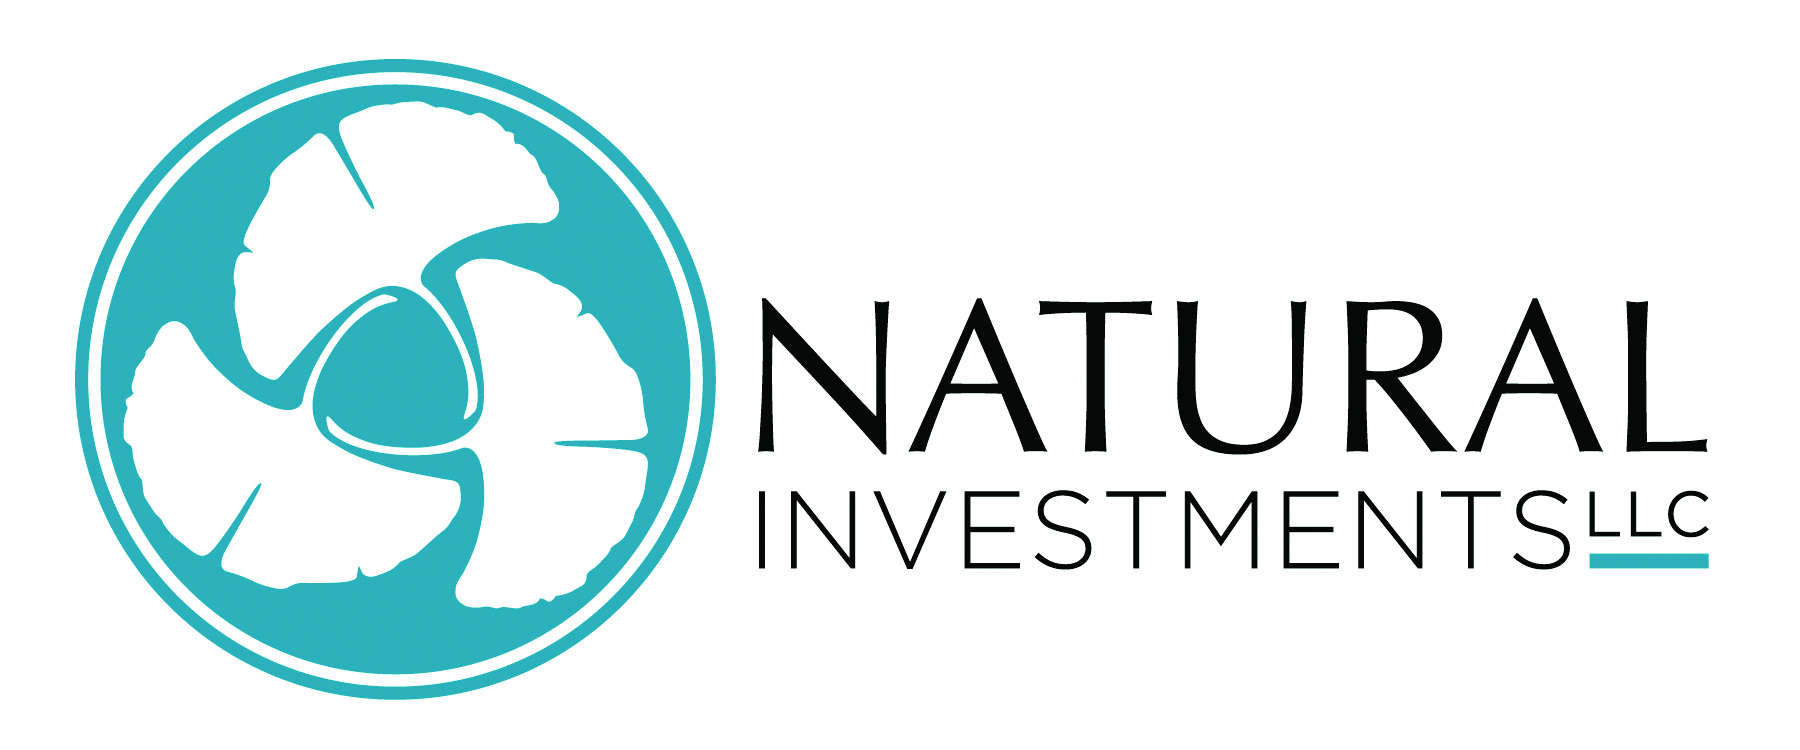 Mf Group Natural Investments Joins As Sponsor For Neighborhood Mini Grants